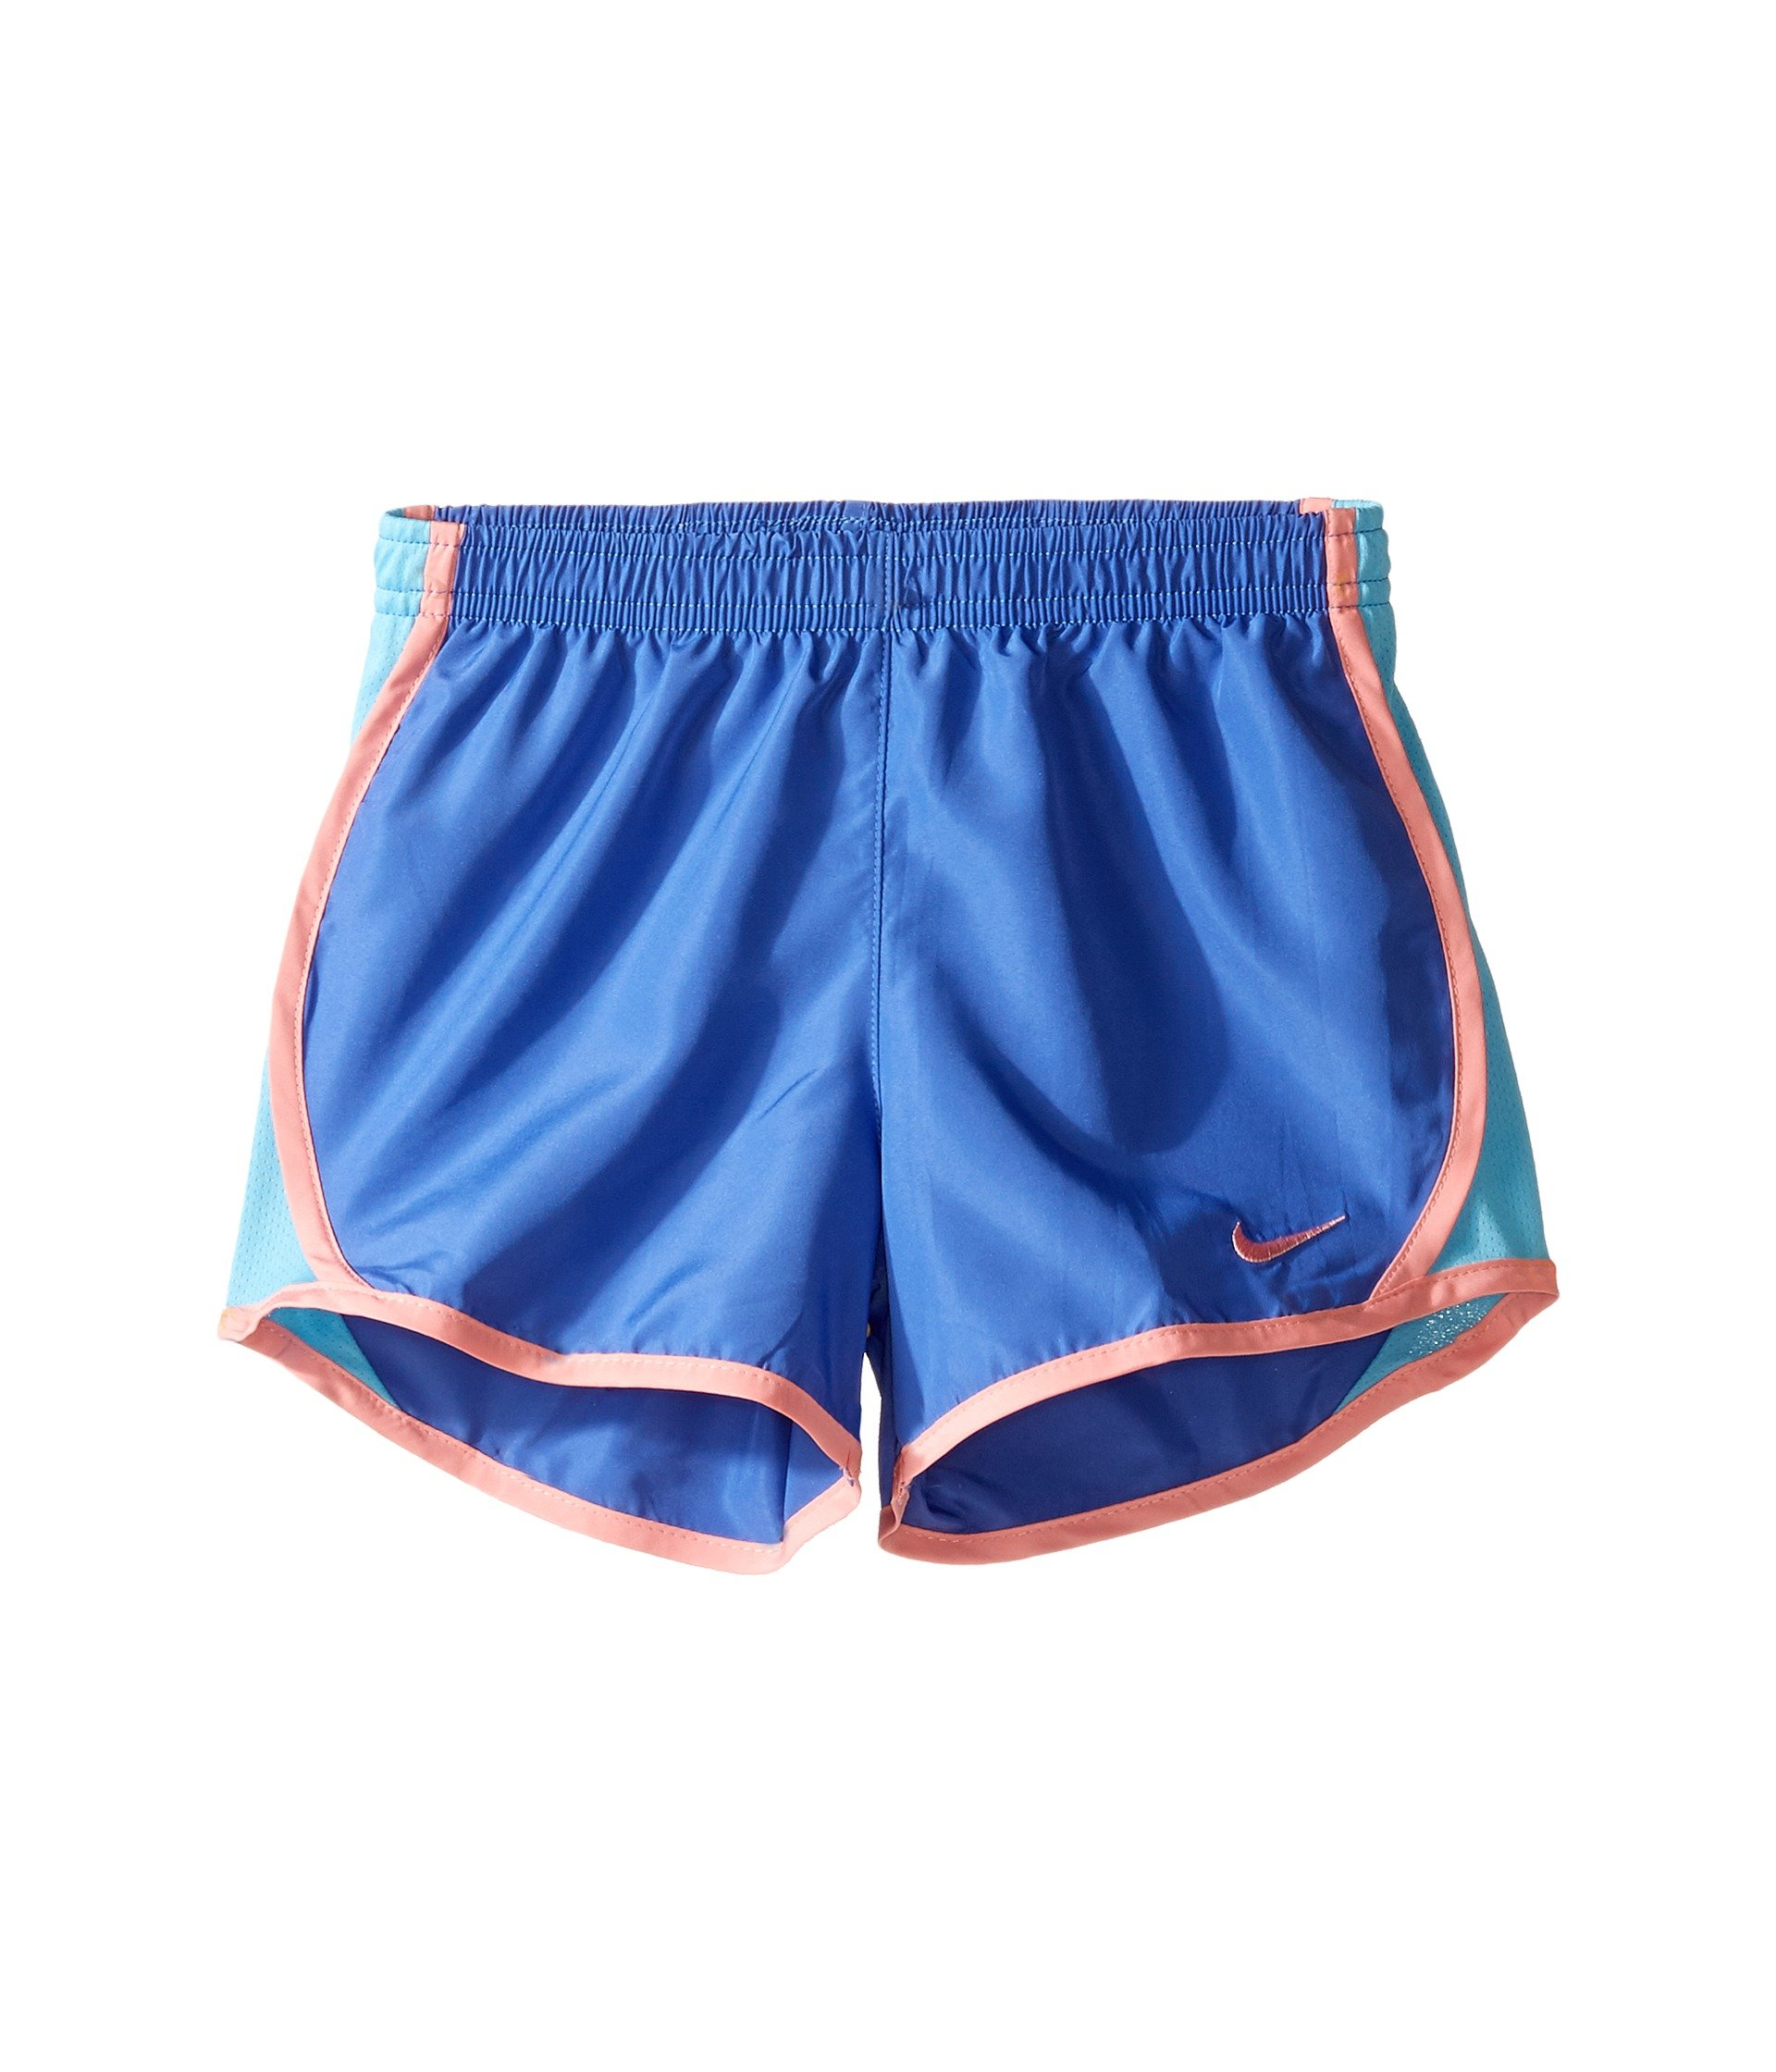 Nike Kids Dri-FIT Woven Short Toddler/Little Kids Comet Blue Girls Shorts by Nike